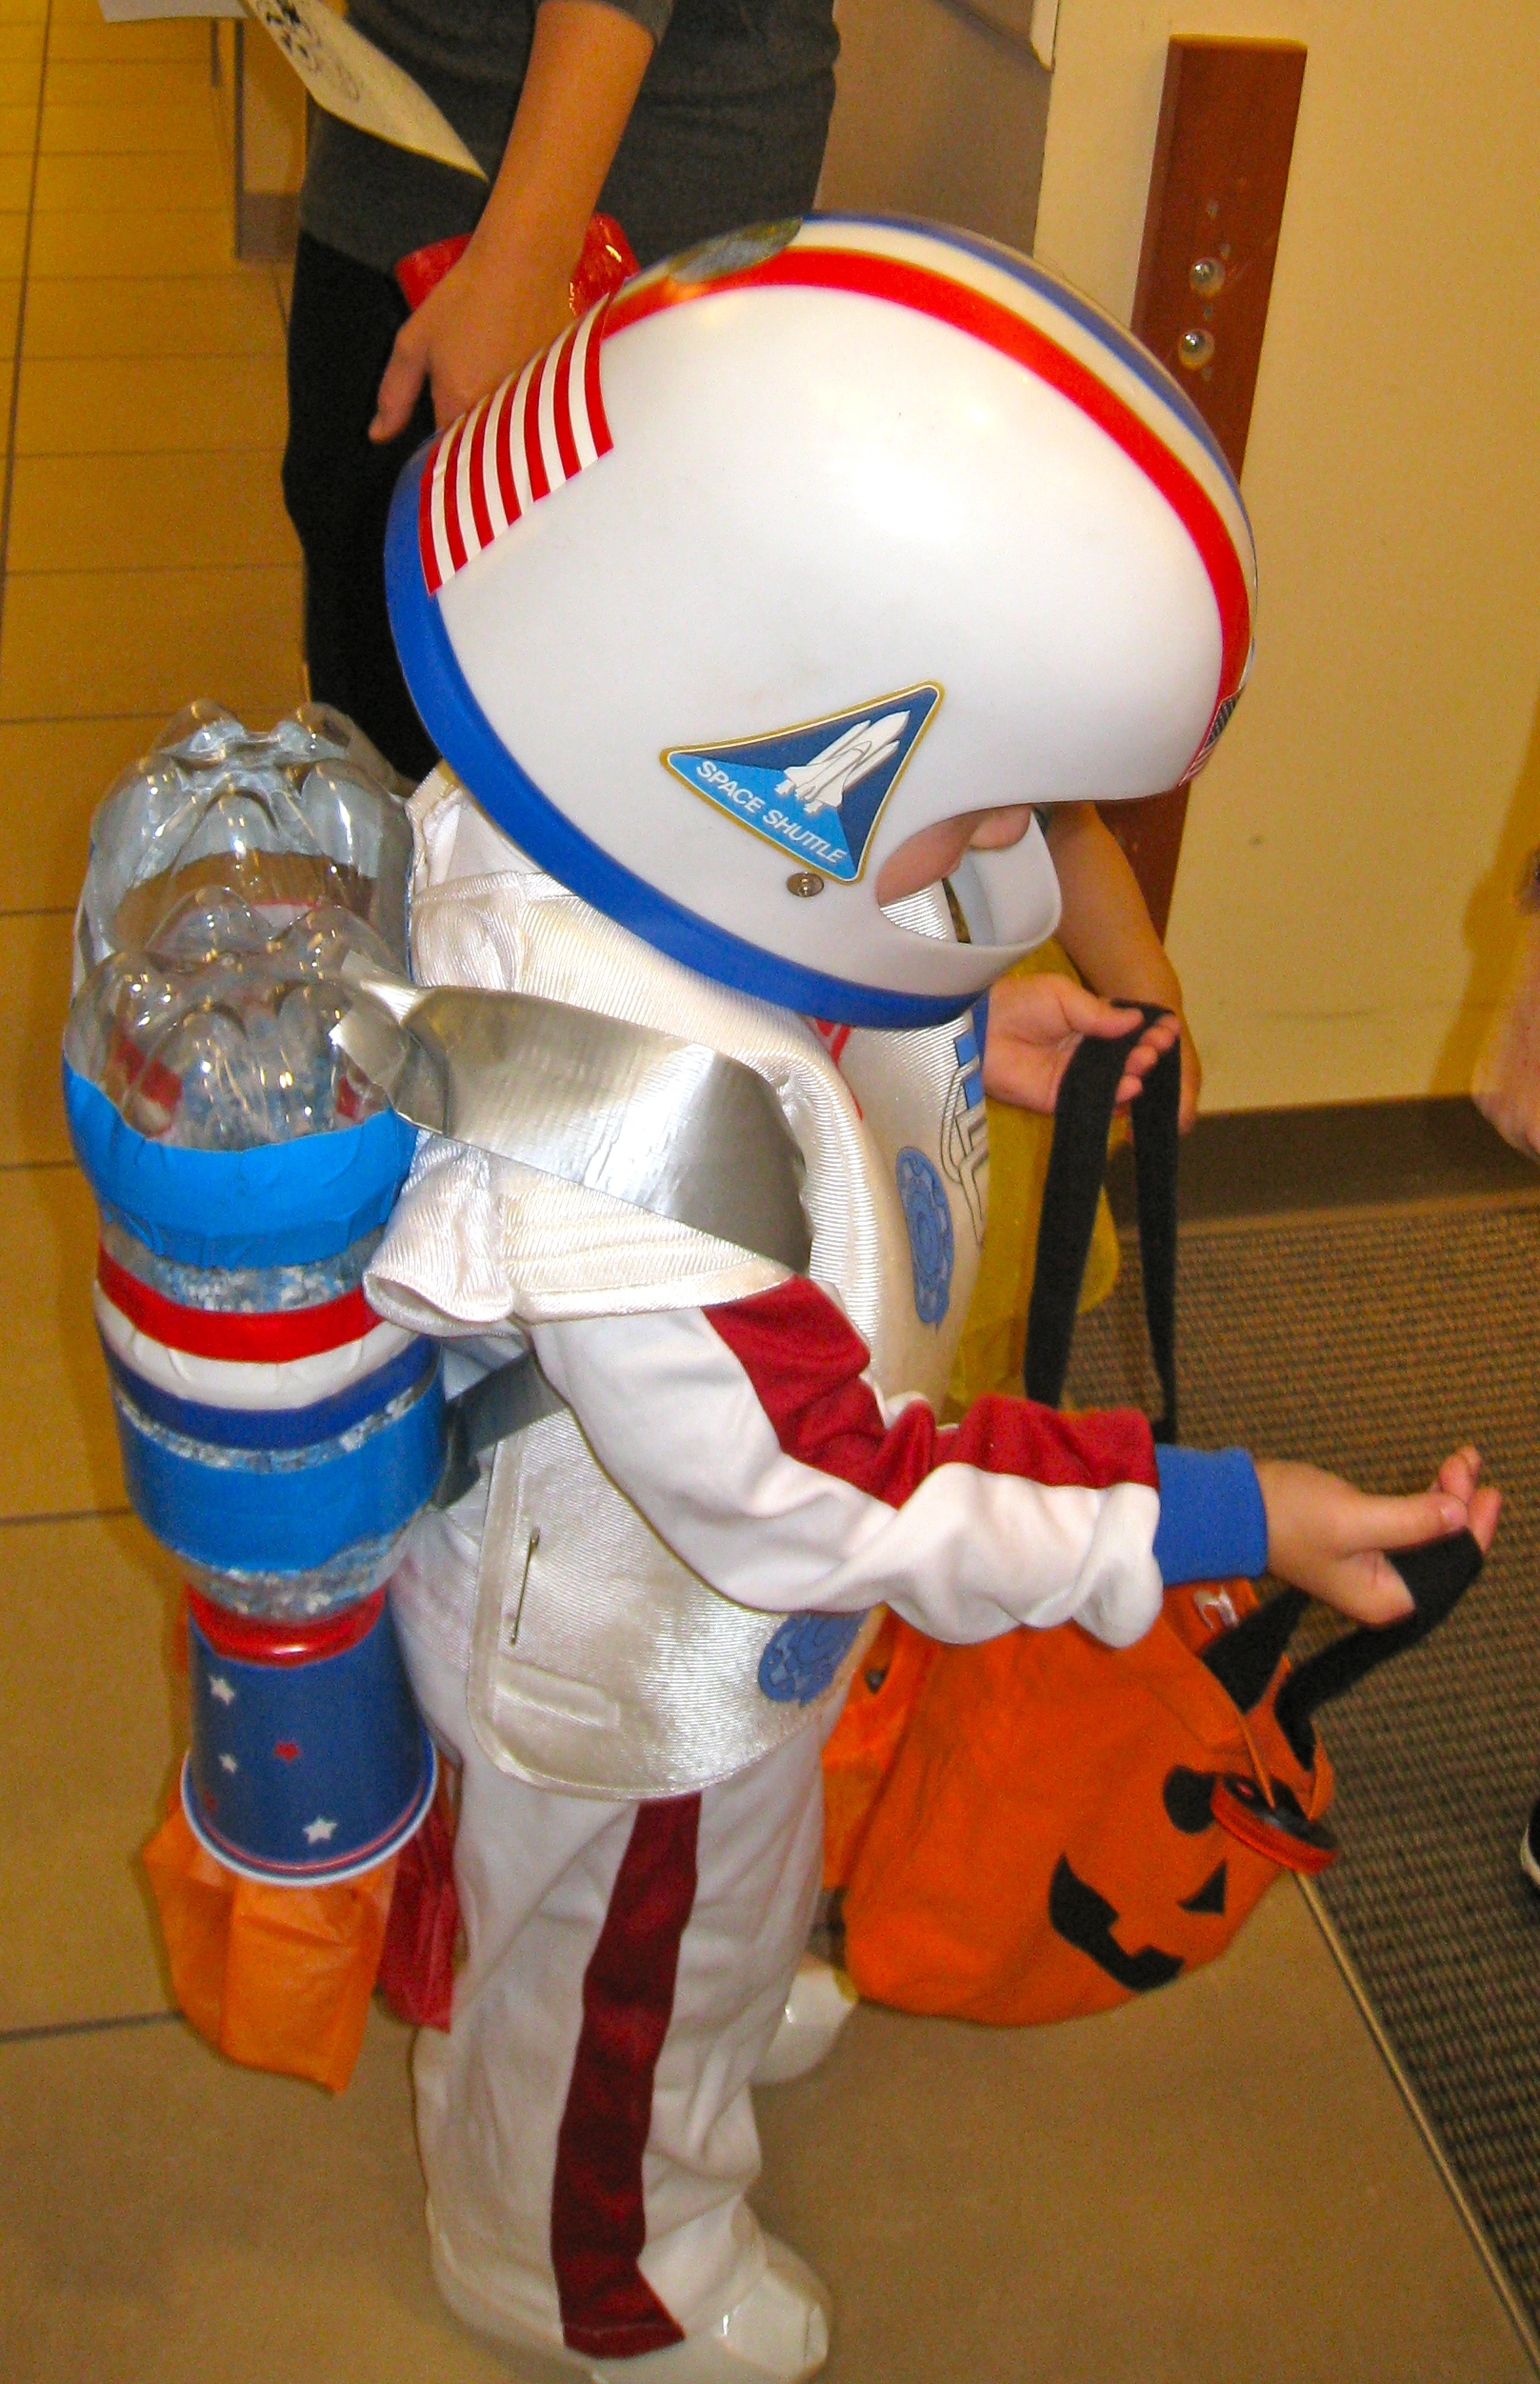 astronaut birthday party supplies - photo #27